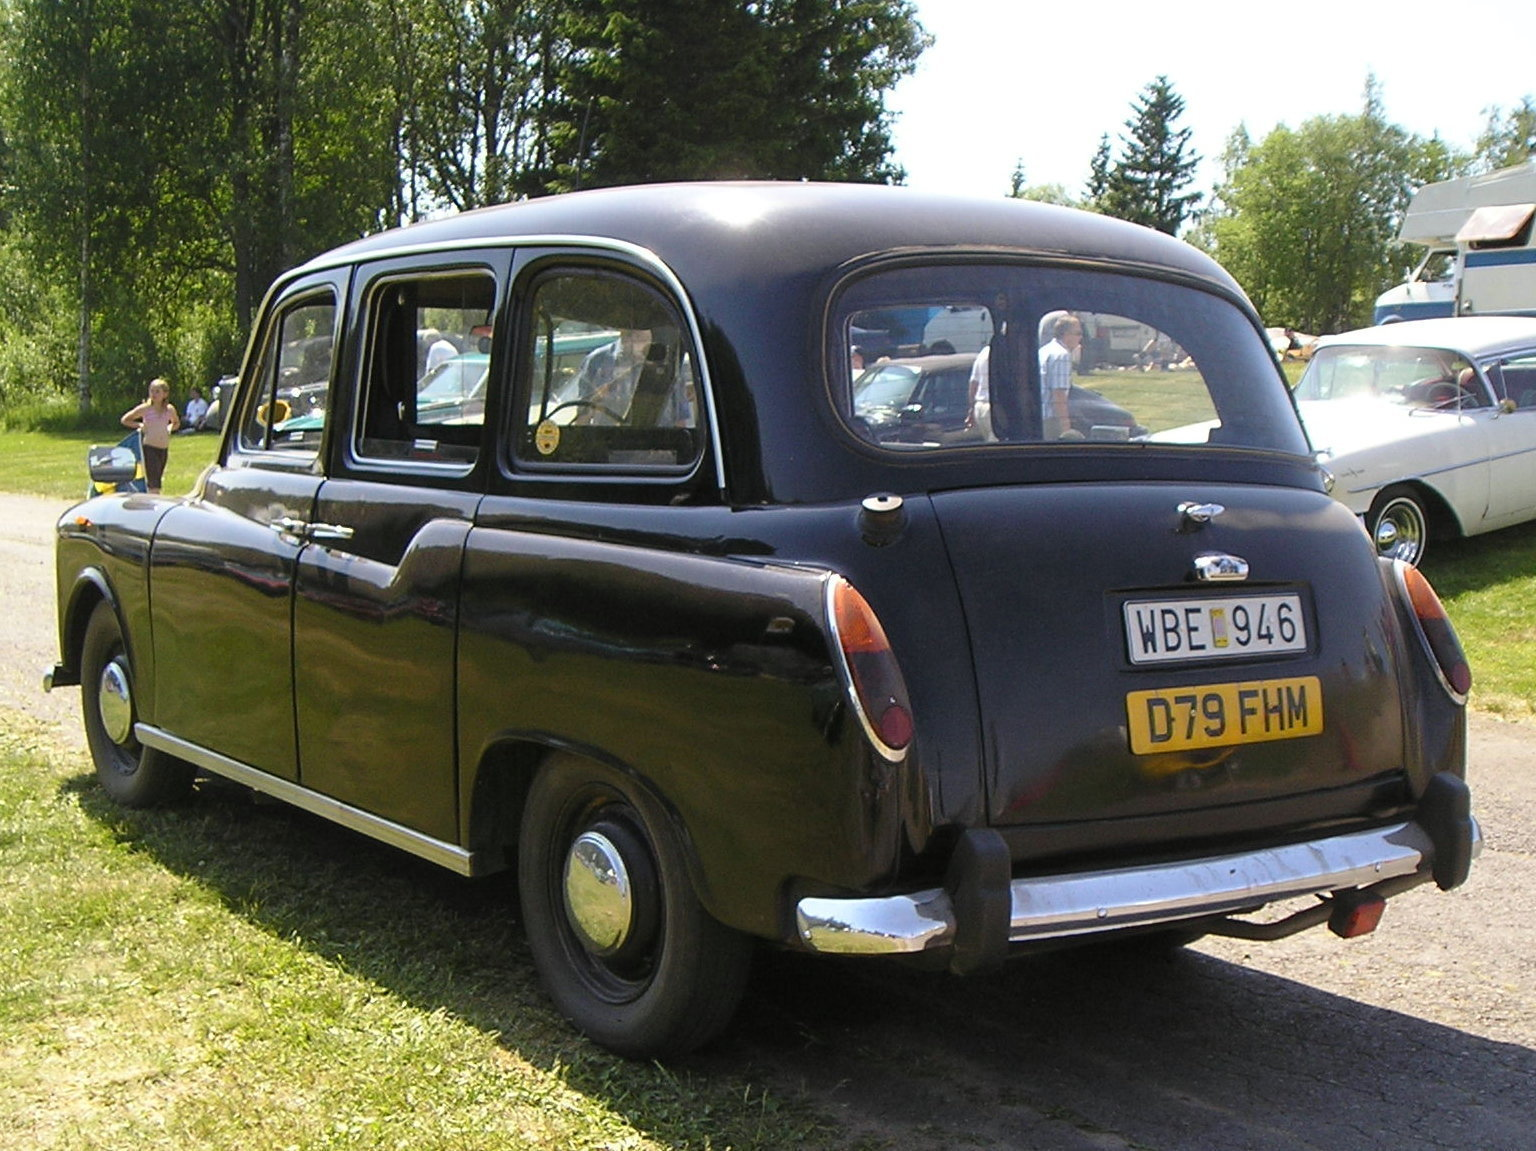 Carbodies taxi photo - 2